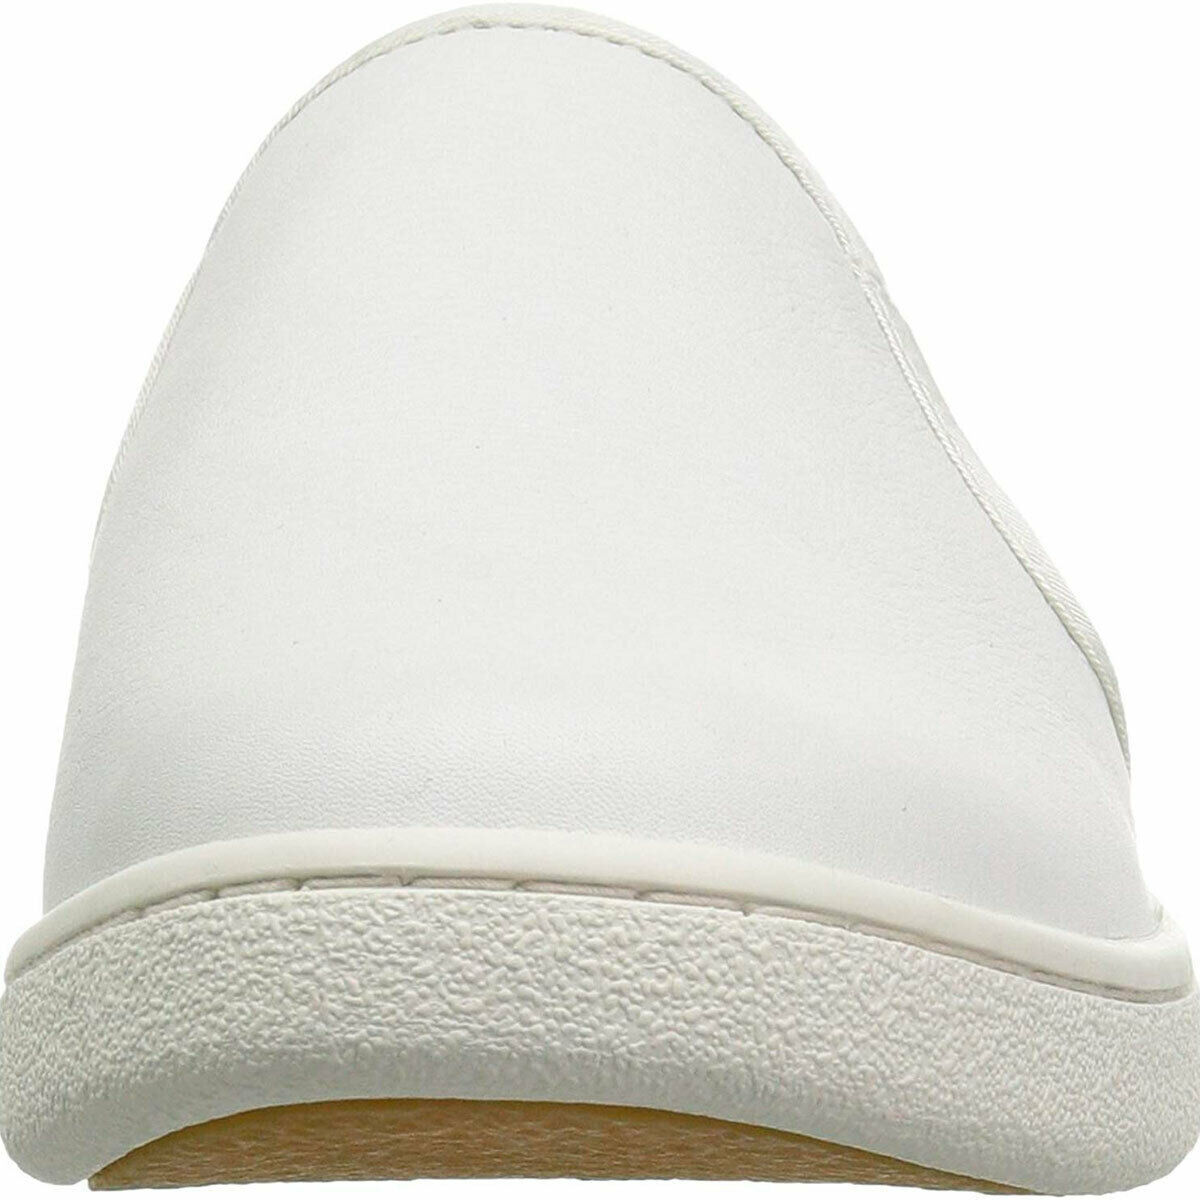 UGG Women's Cas Slip-on Fashion Sneakers White 5.5 M MSRP 100 New image 2